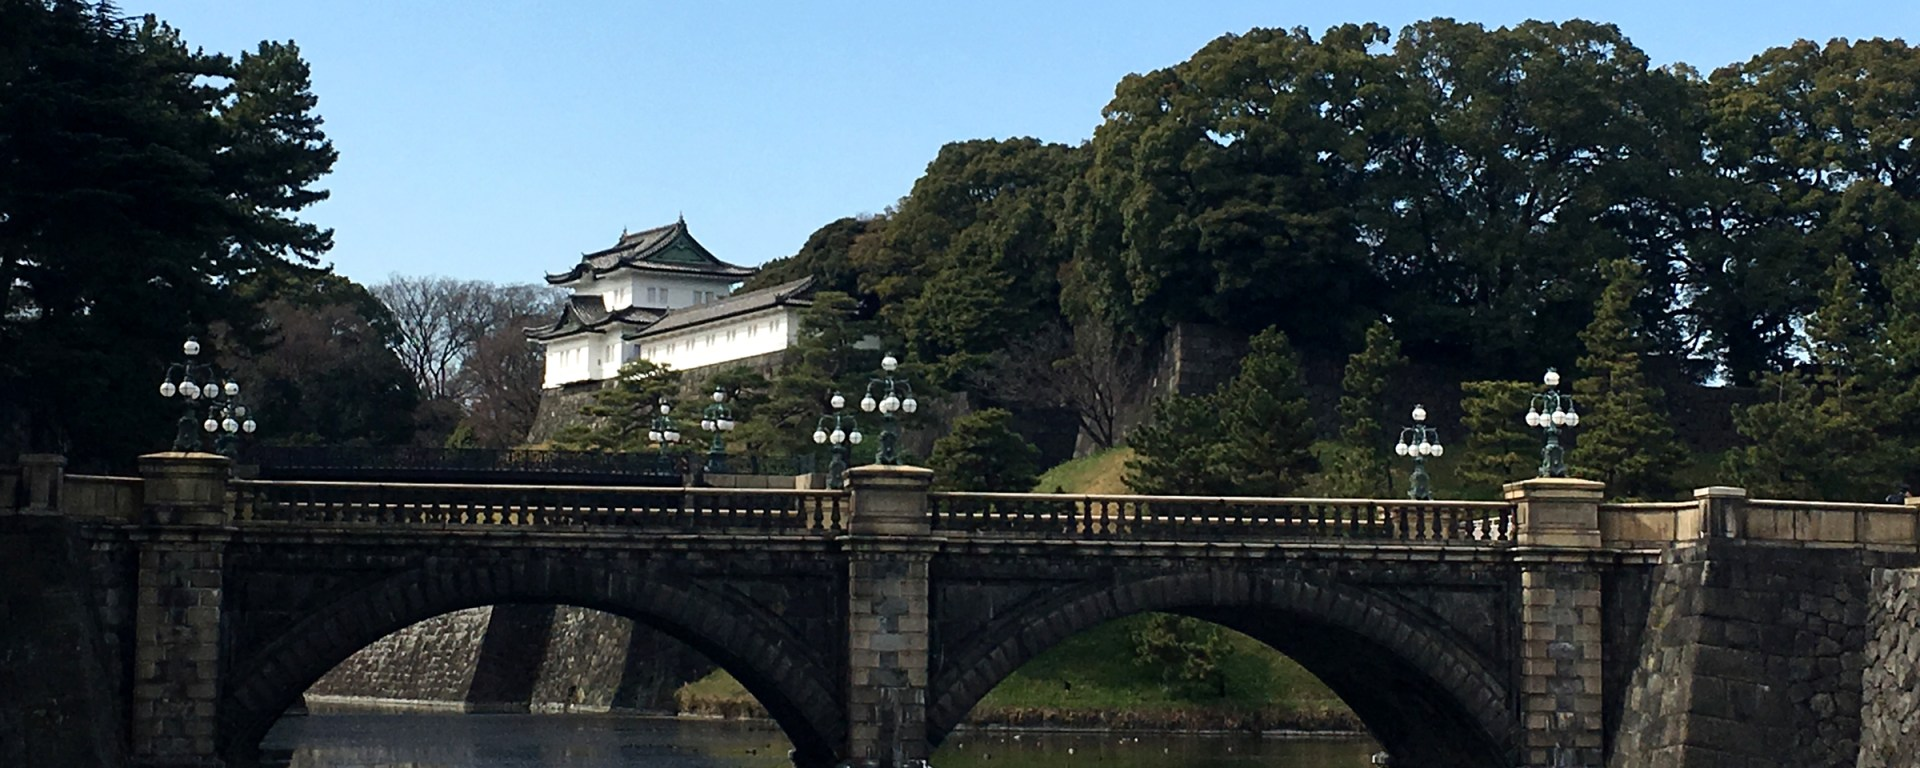 Imperial Palace, Tokyo Japan